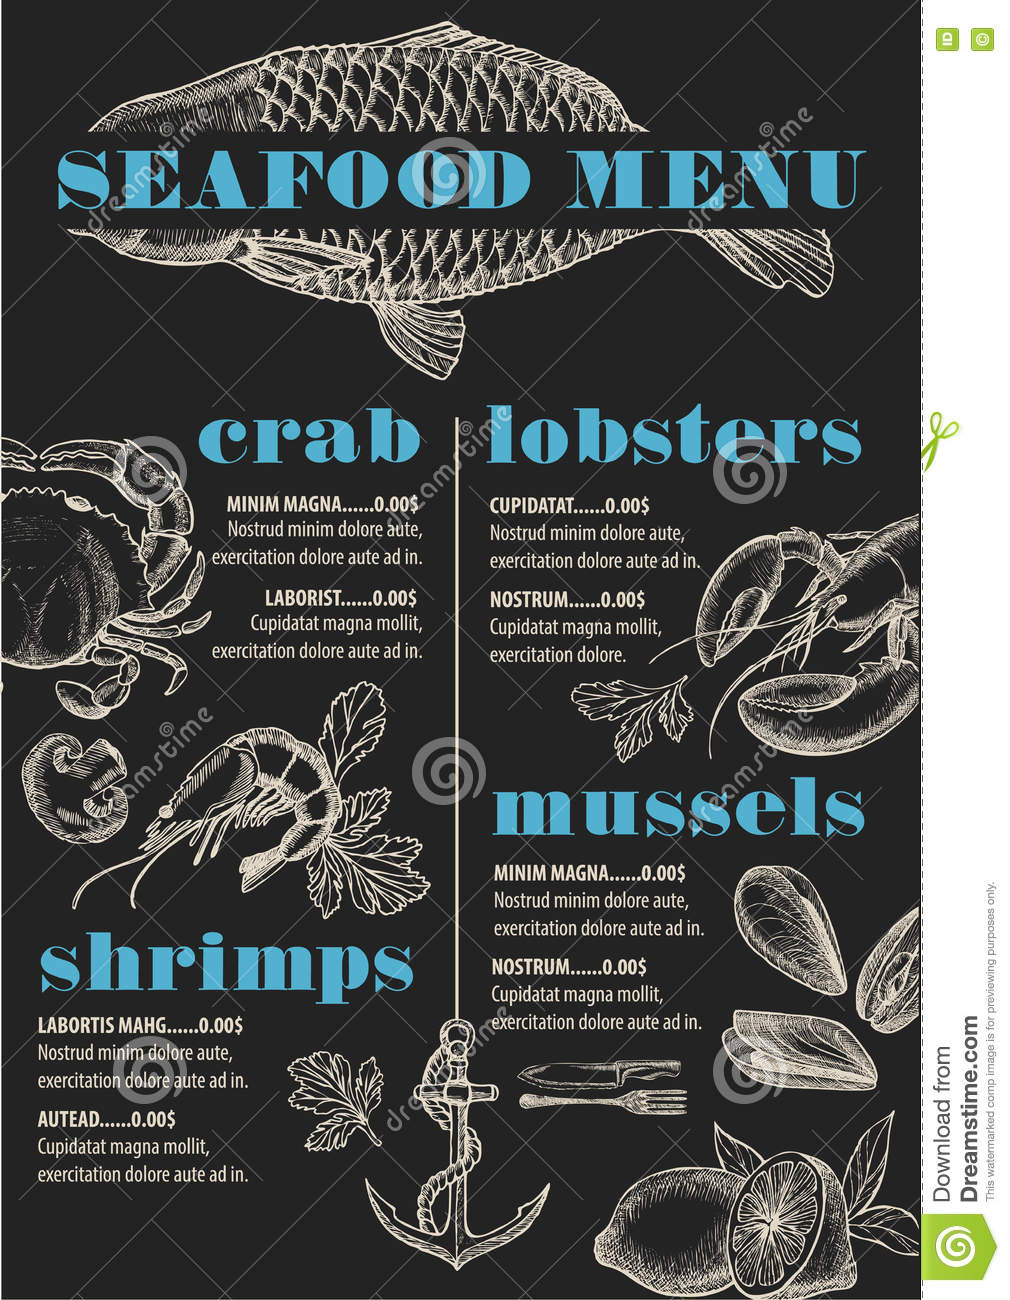 Seafood Menu Template Royalty Free Stock Photography